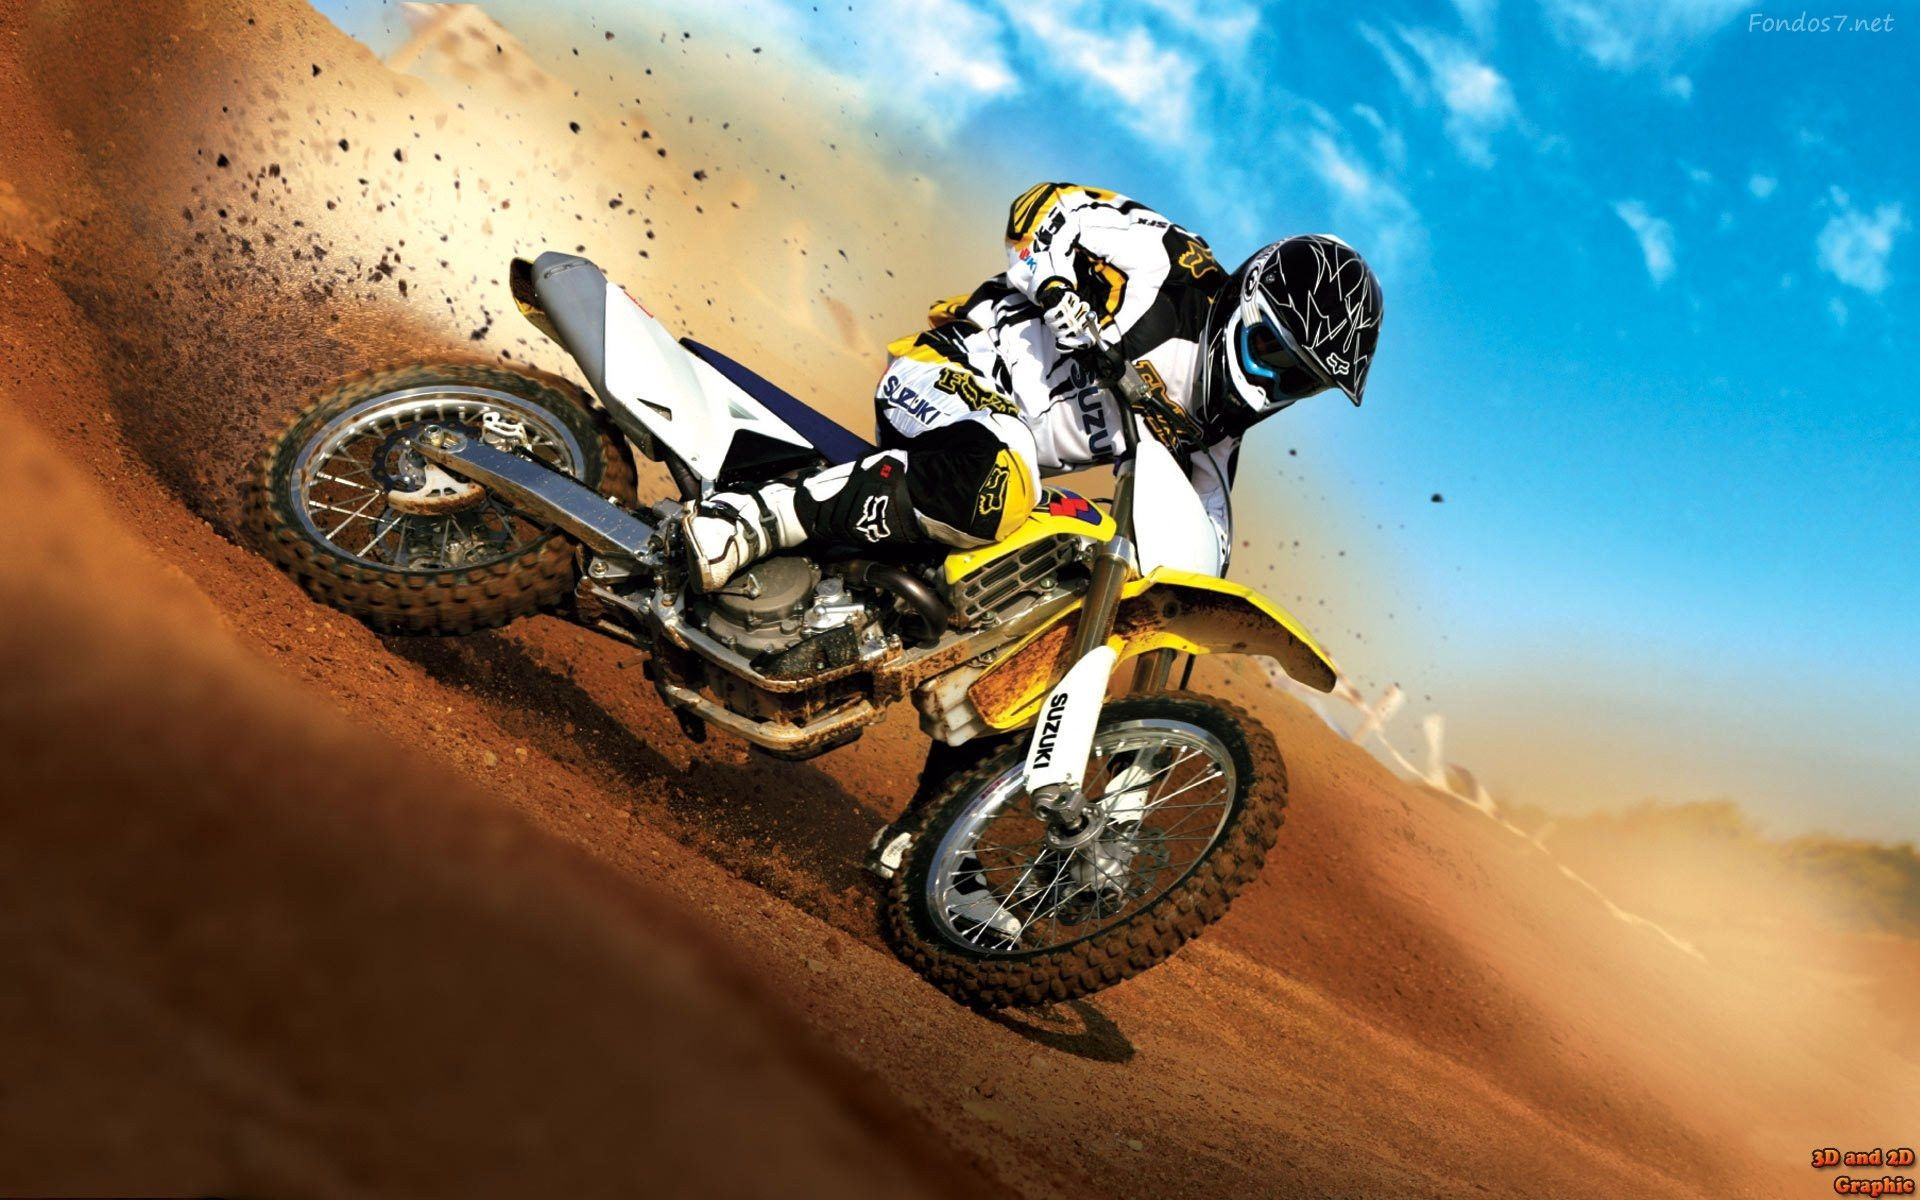 MotoCross 163 Motocross wallpaper HD wallpapers backgrounds 1920x1200